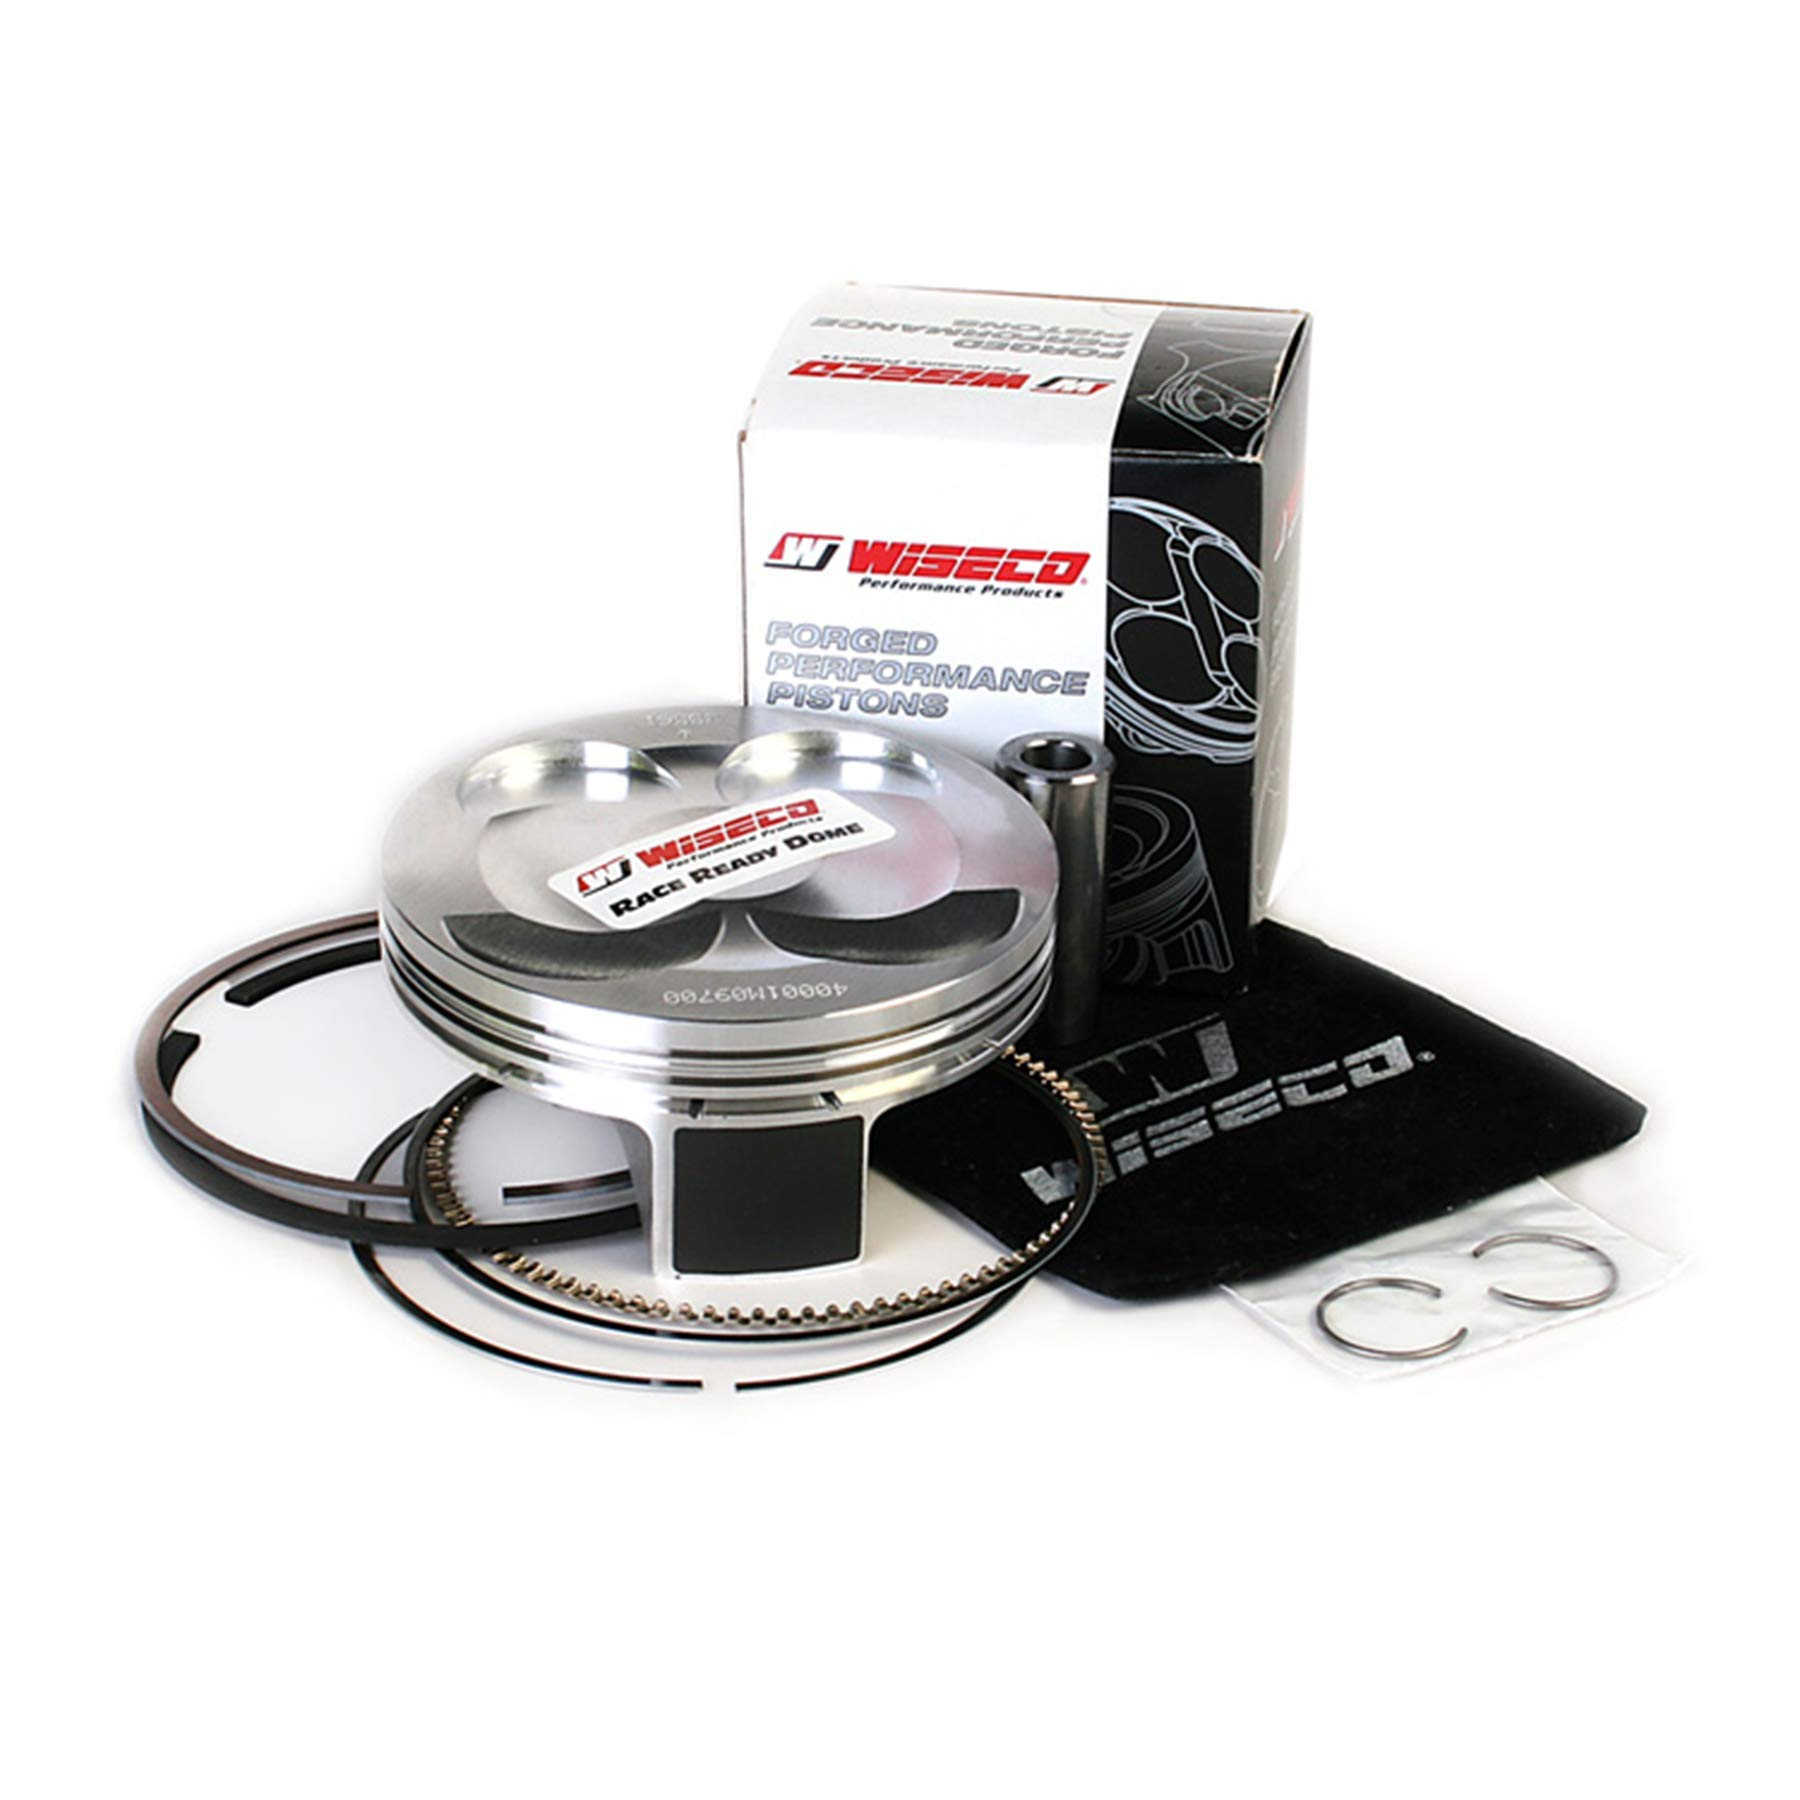 Piston Kit - Standard Bore 97.00mm, 12.5:1 Compression For 2011 Yamaha YZ450F Offroad Motorcycle by RD - Wiseco